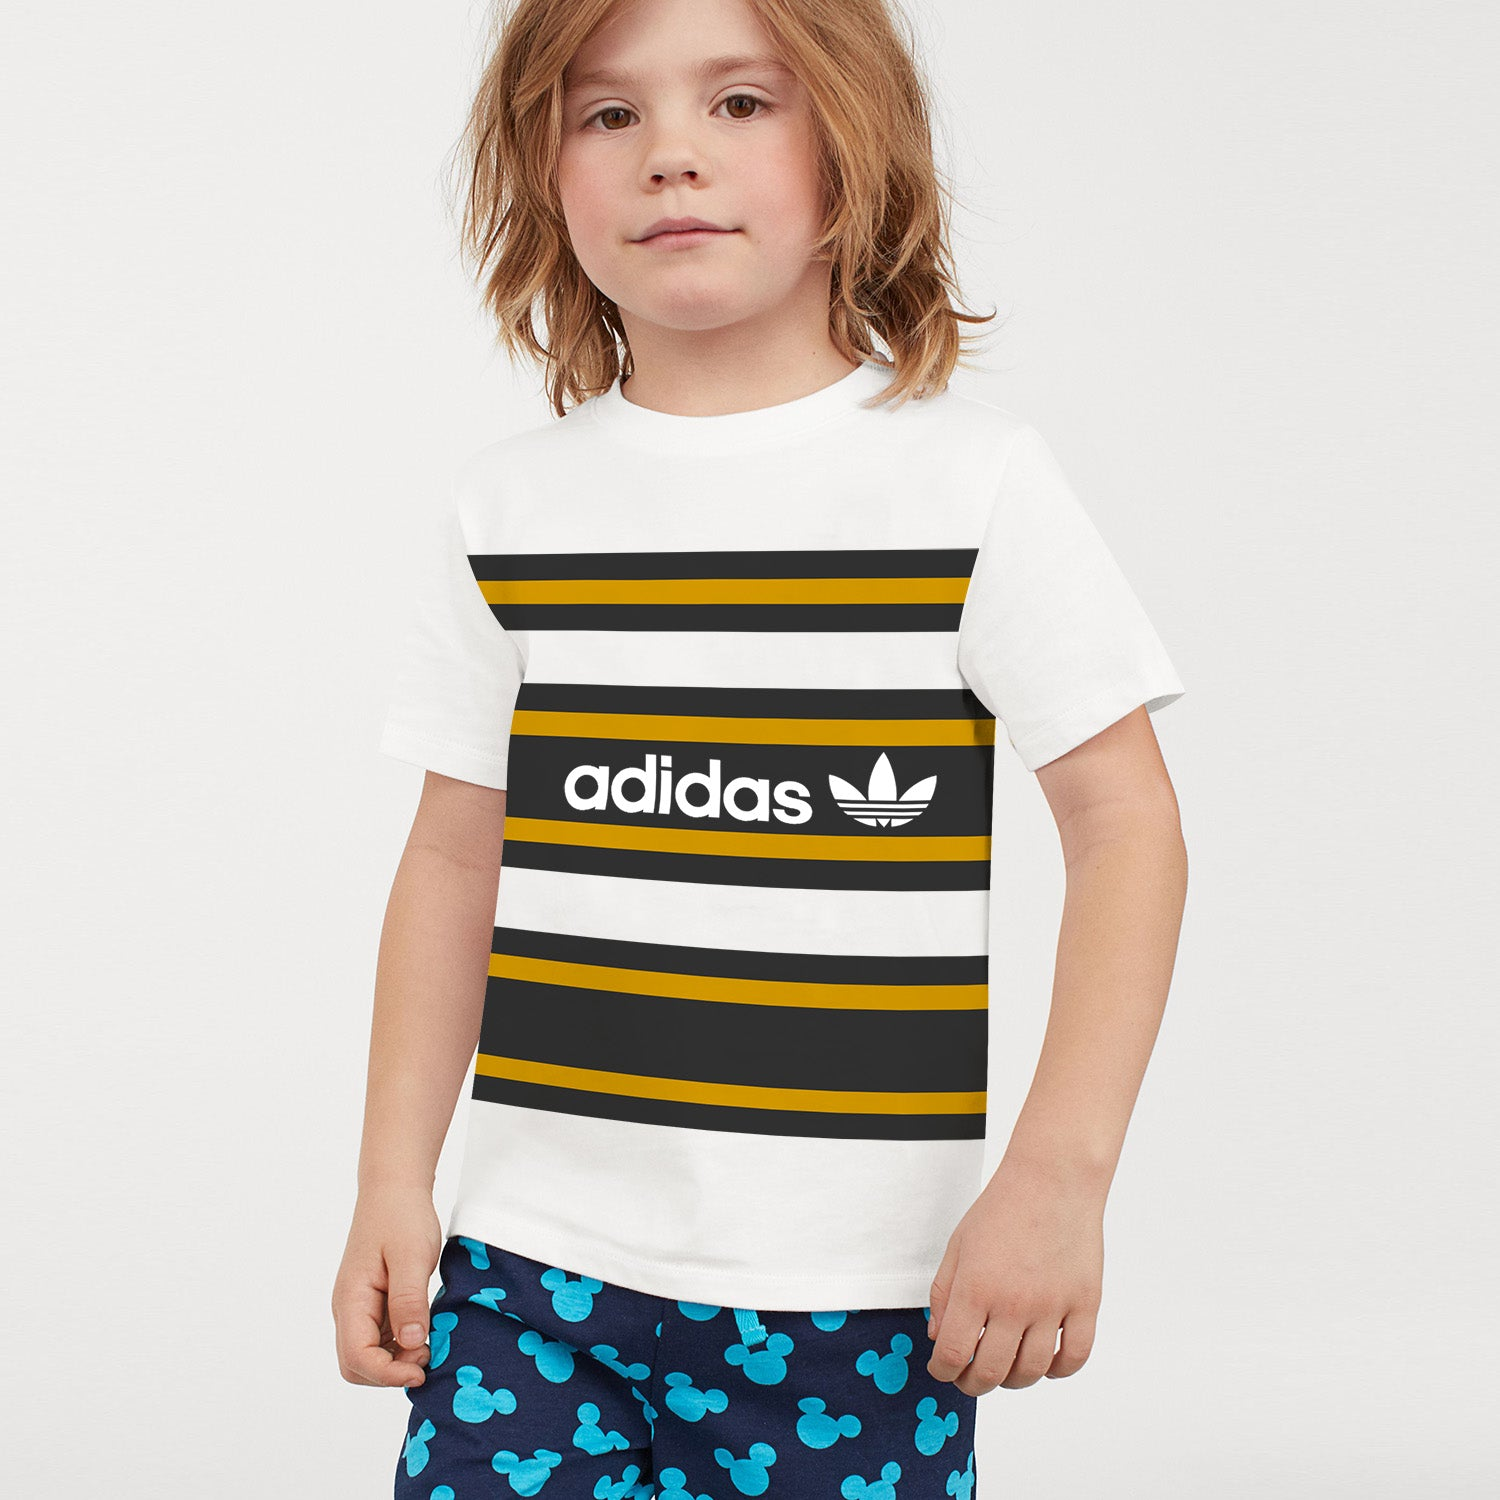 ADS Crew Neck Single Jersey Tee Shirt For Kids-White with Yellow & Dark Navy Panels-BE12037